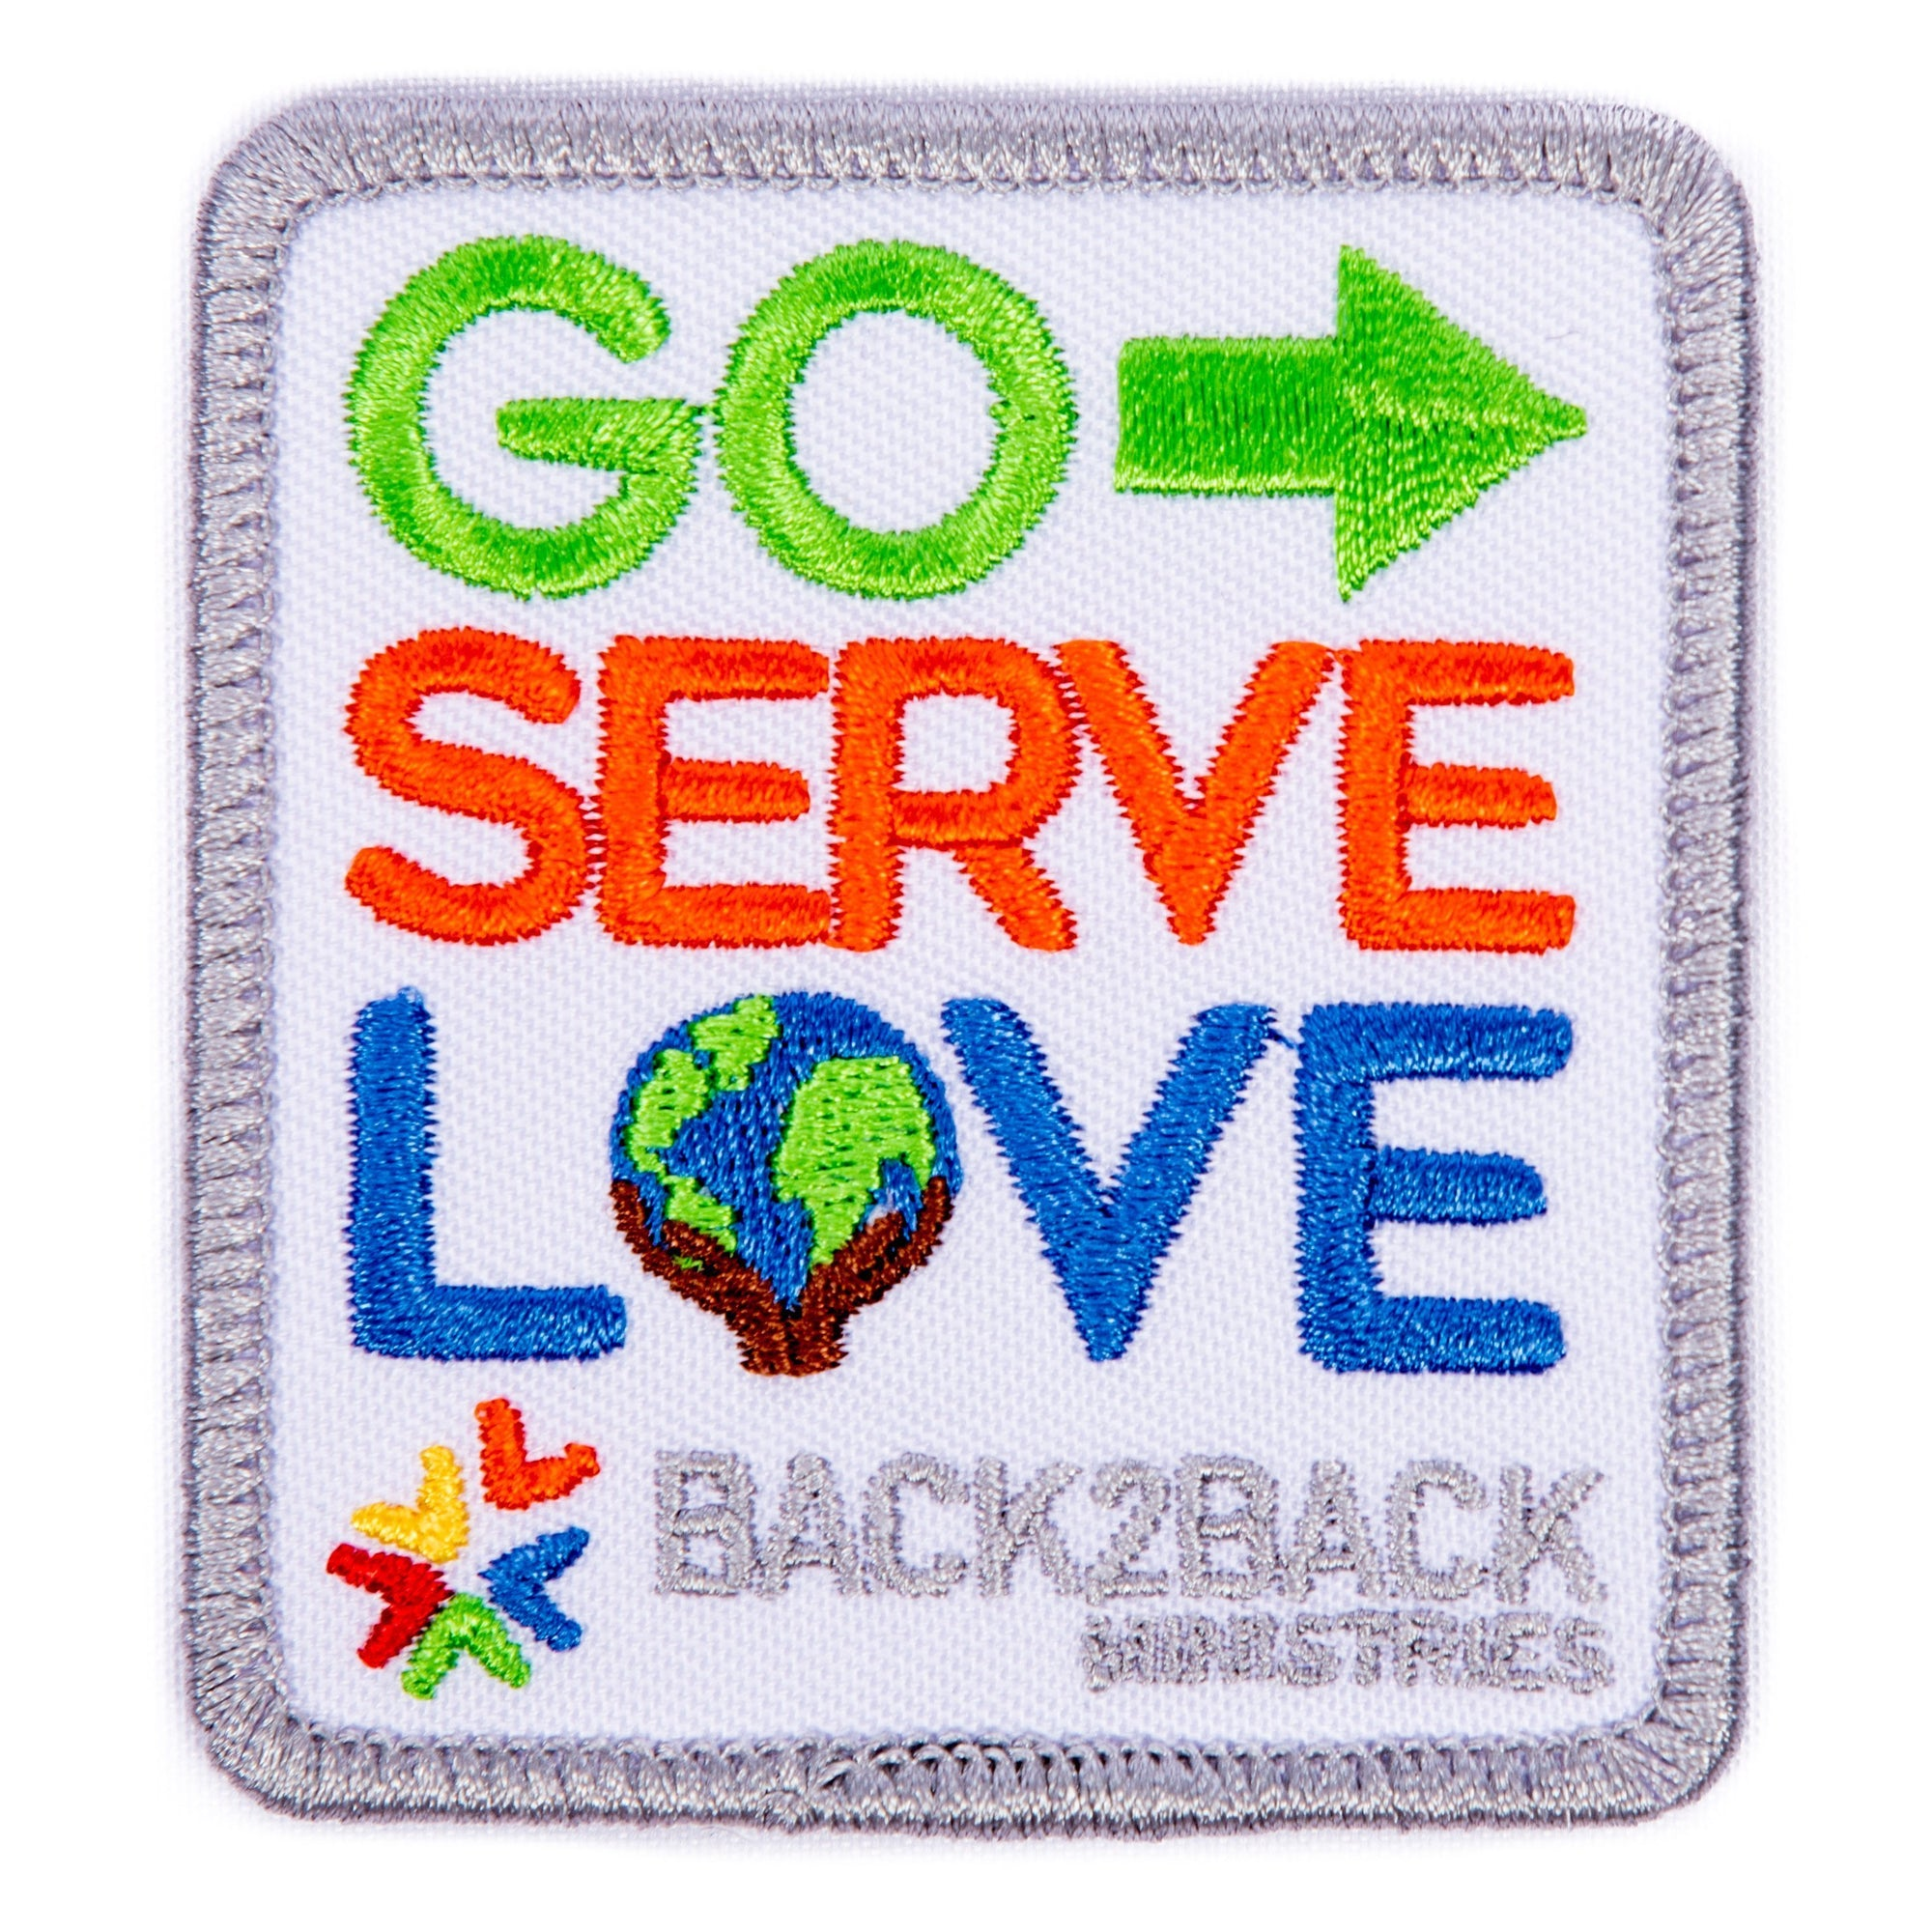 Back2Back Ministries Go Serve And Love Patch 4130 Uniform Accessories